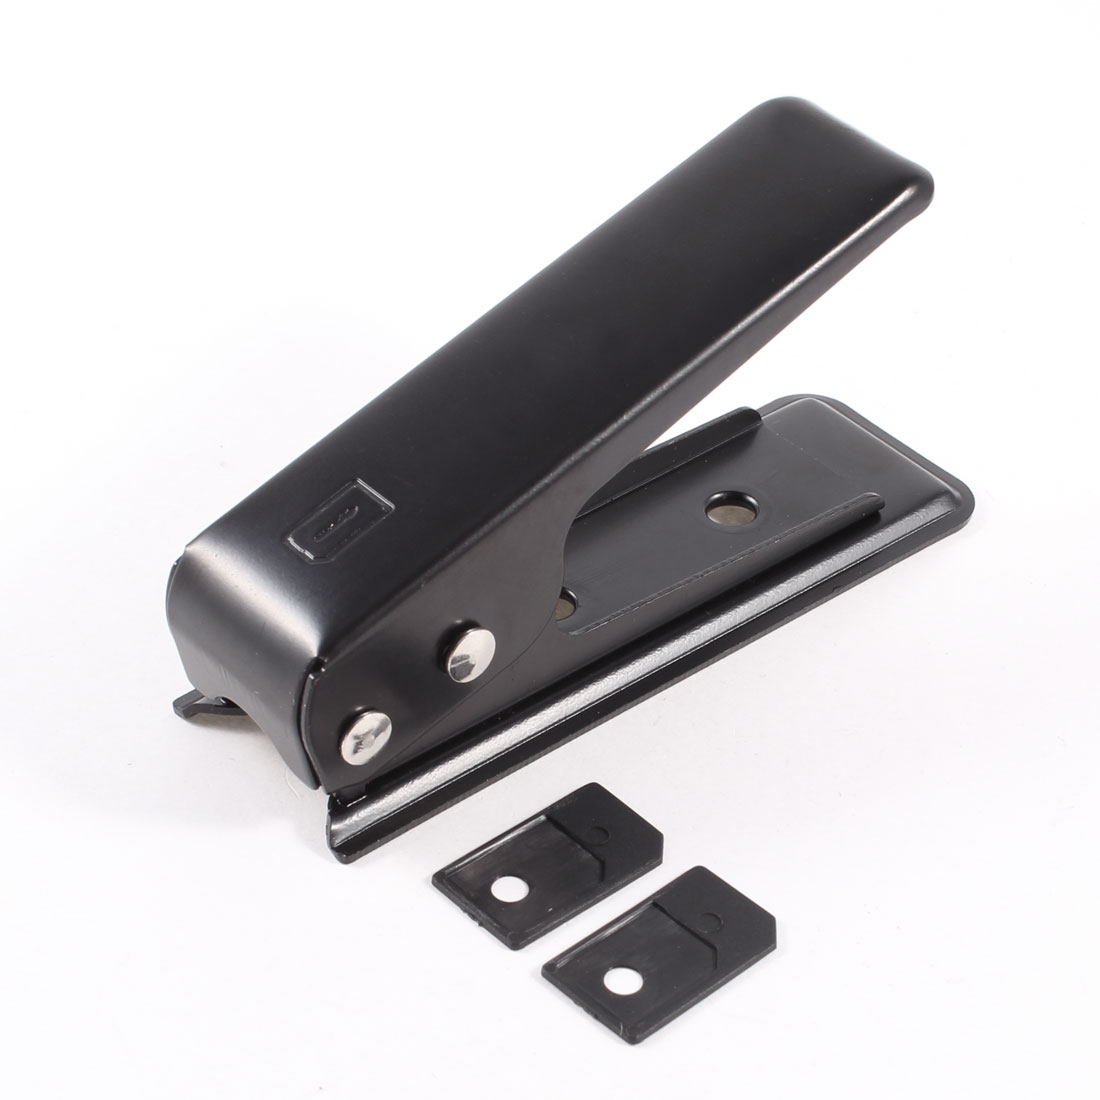 Black Standard SIM to Micro SIM Card Cutter